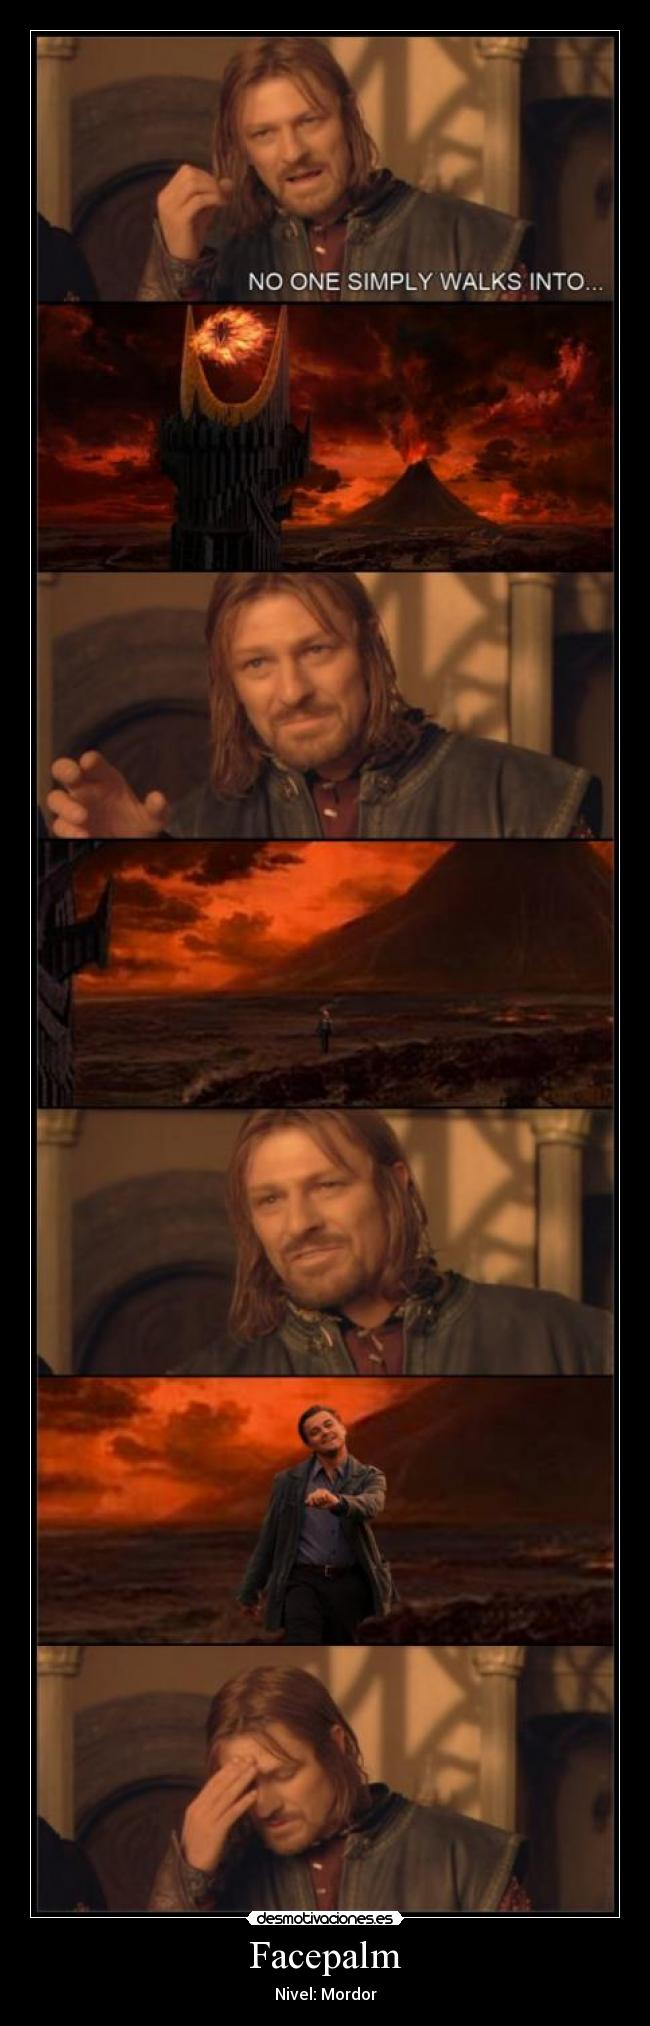 carteles one simply walks into mordor desmotivaciones